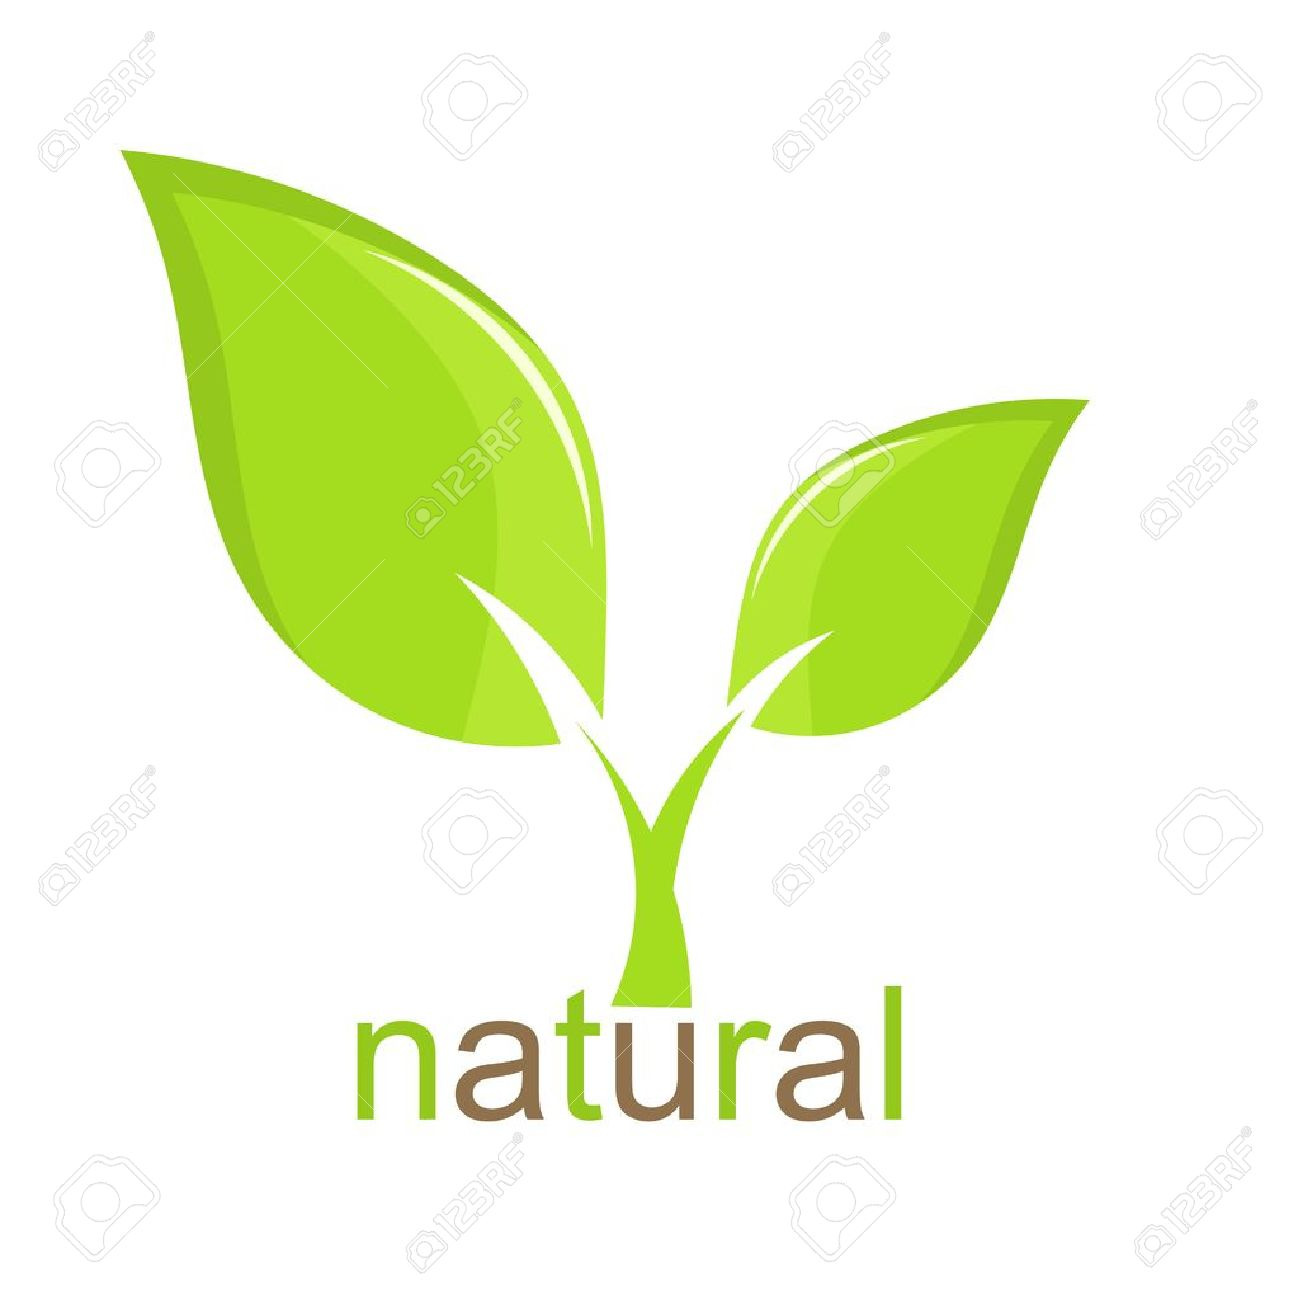 Green leaf natural icon. Vector illustration Stock Vector - 13142441